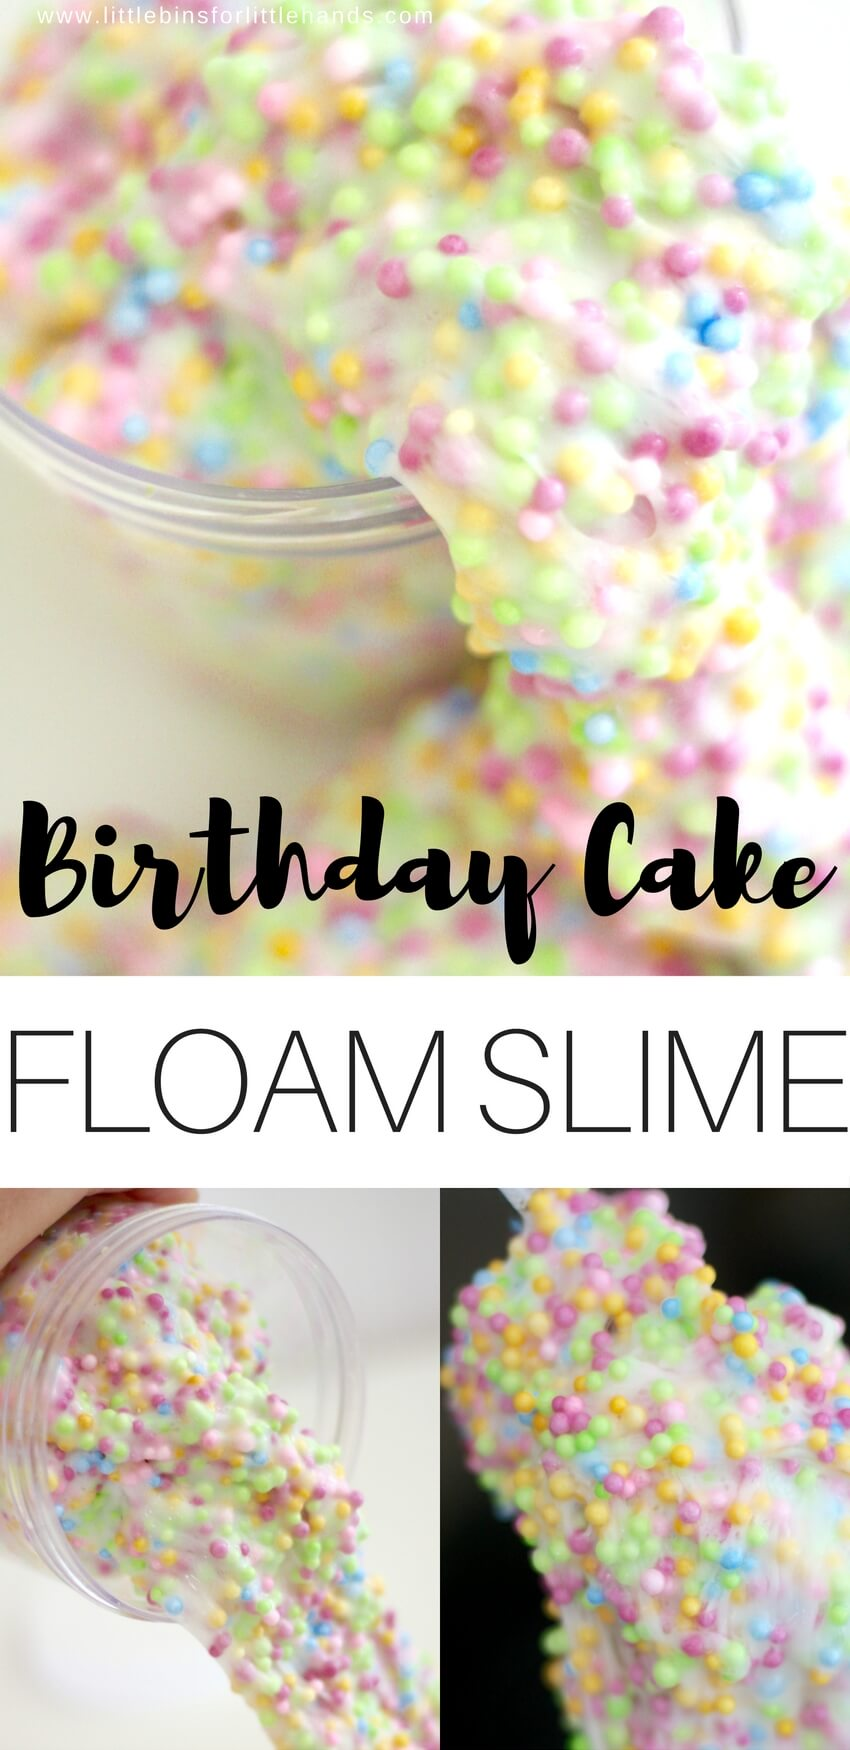 Foam and slime combine to make floam and you can make your very own homemade birthday cake themed floam slime recipe with our easy method! There's even a video! Floam is a super cool texture and is nice and stretchy too. You can even turn it into a bit of a science experiment as you find your favorite floam consistency. Slime science meets sensory play for a win!